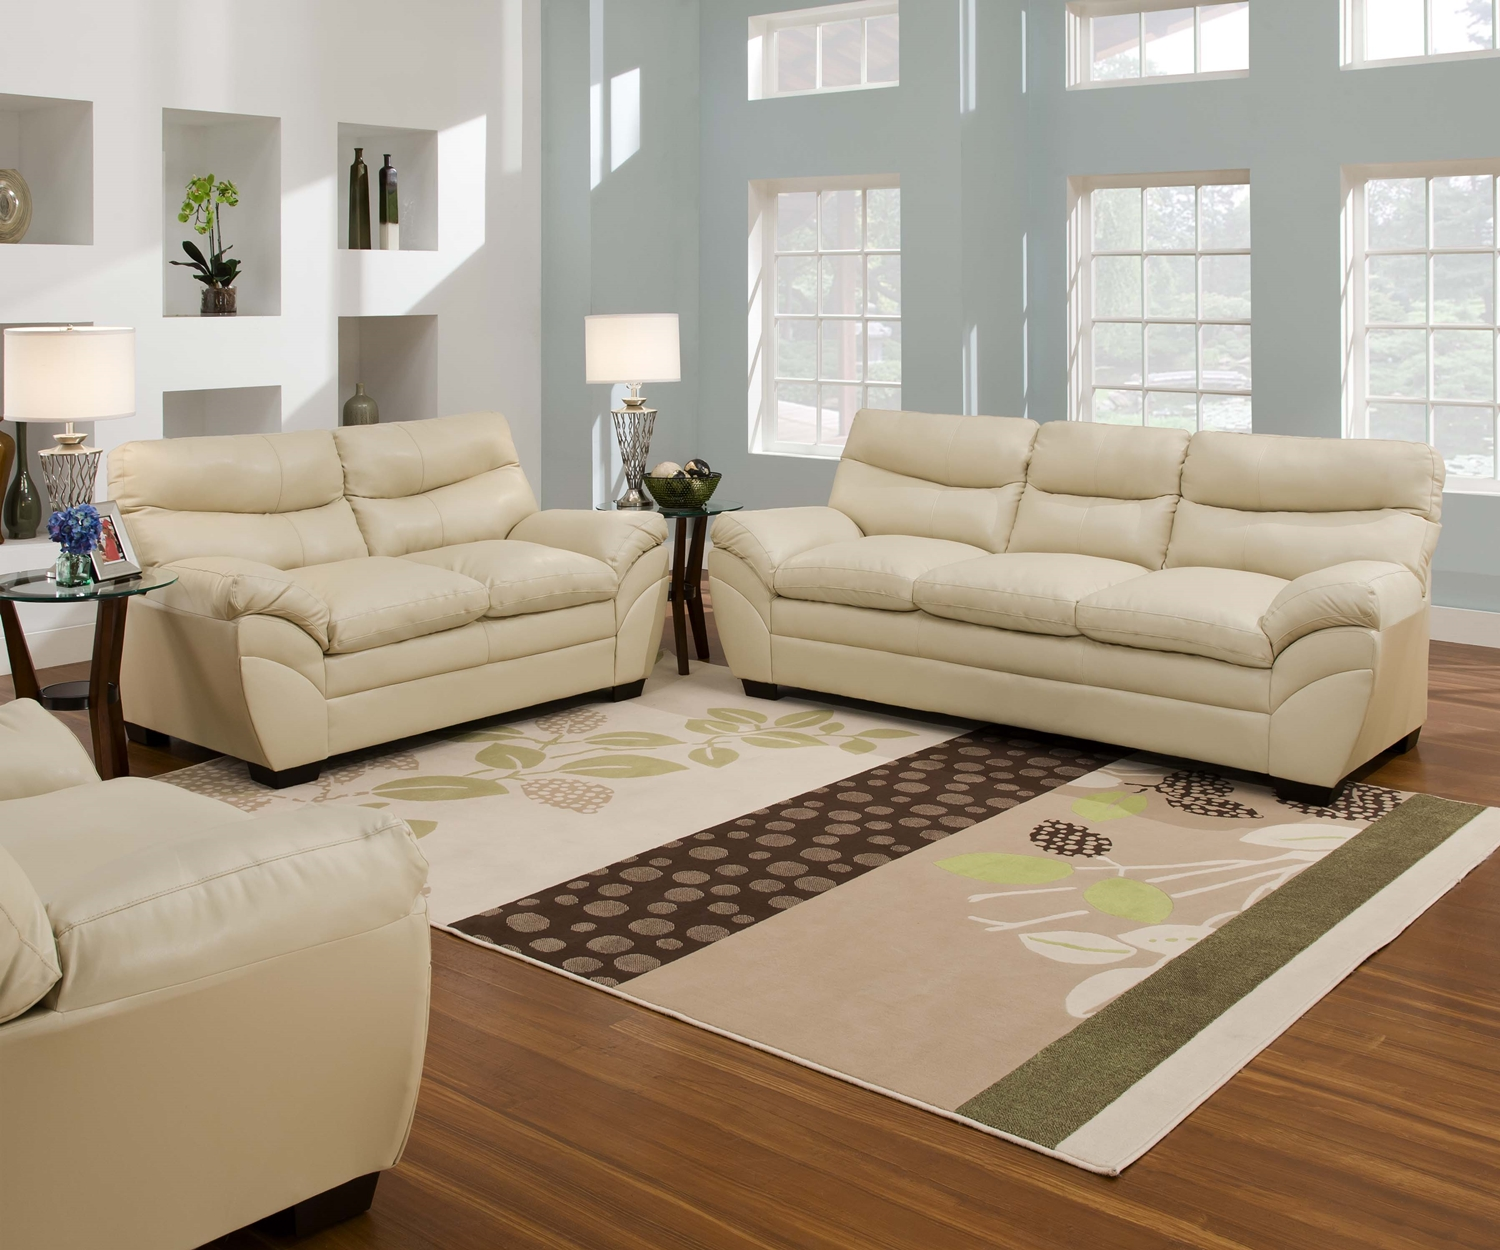 Cream living room furniture for Modern living room couches